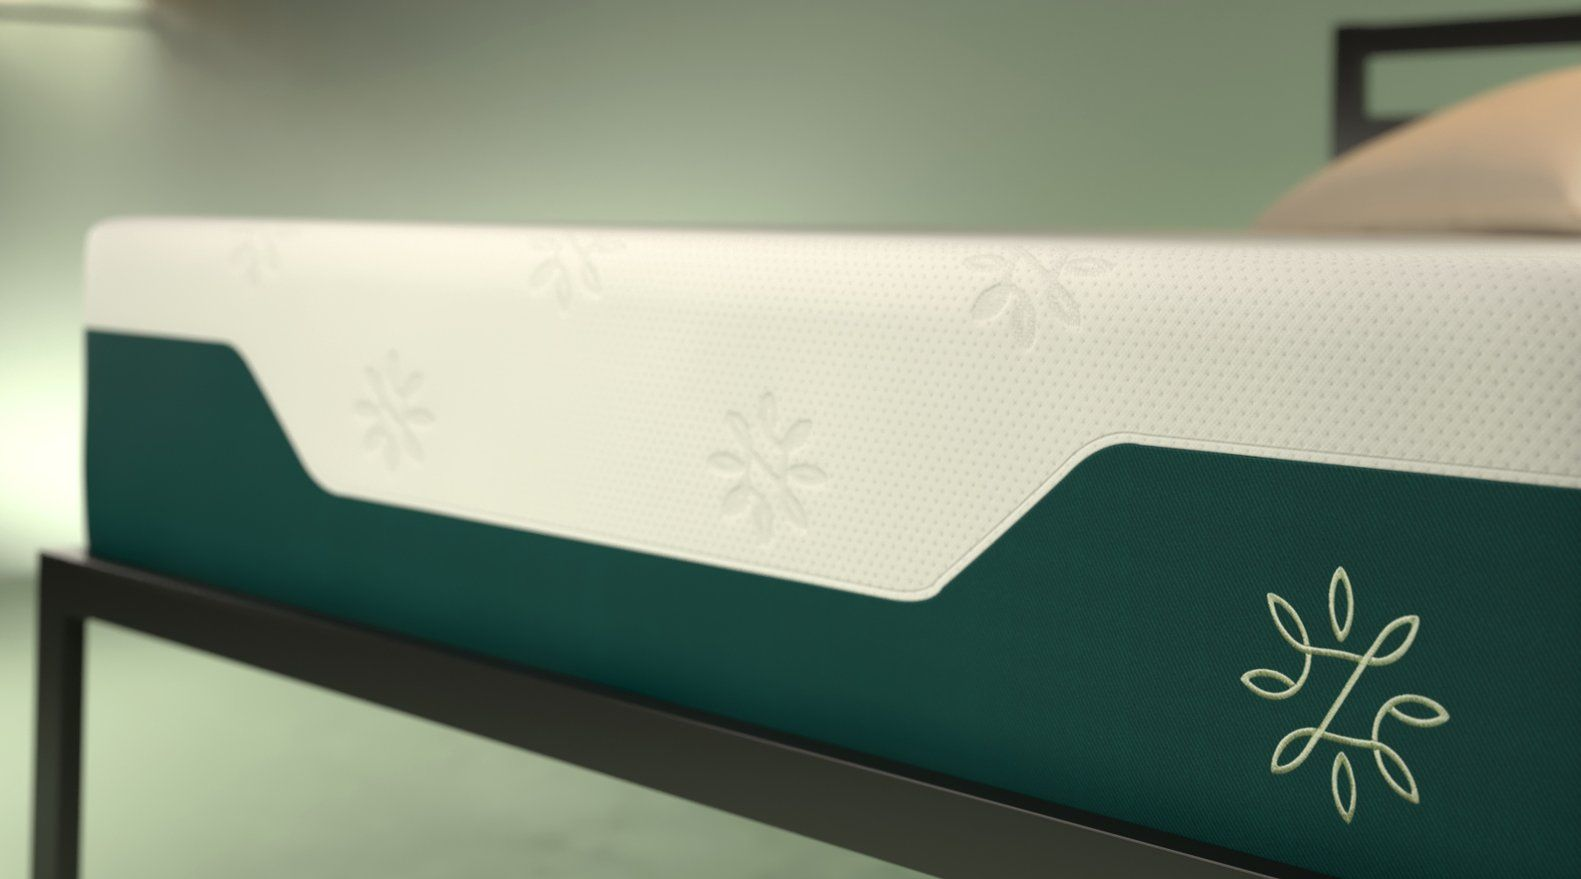 Memory Foam Icoil Spring Hybrid Mattresses Zinus With Images